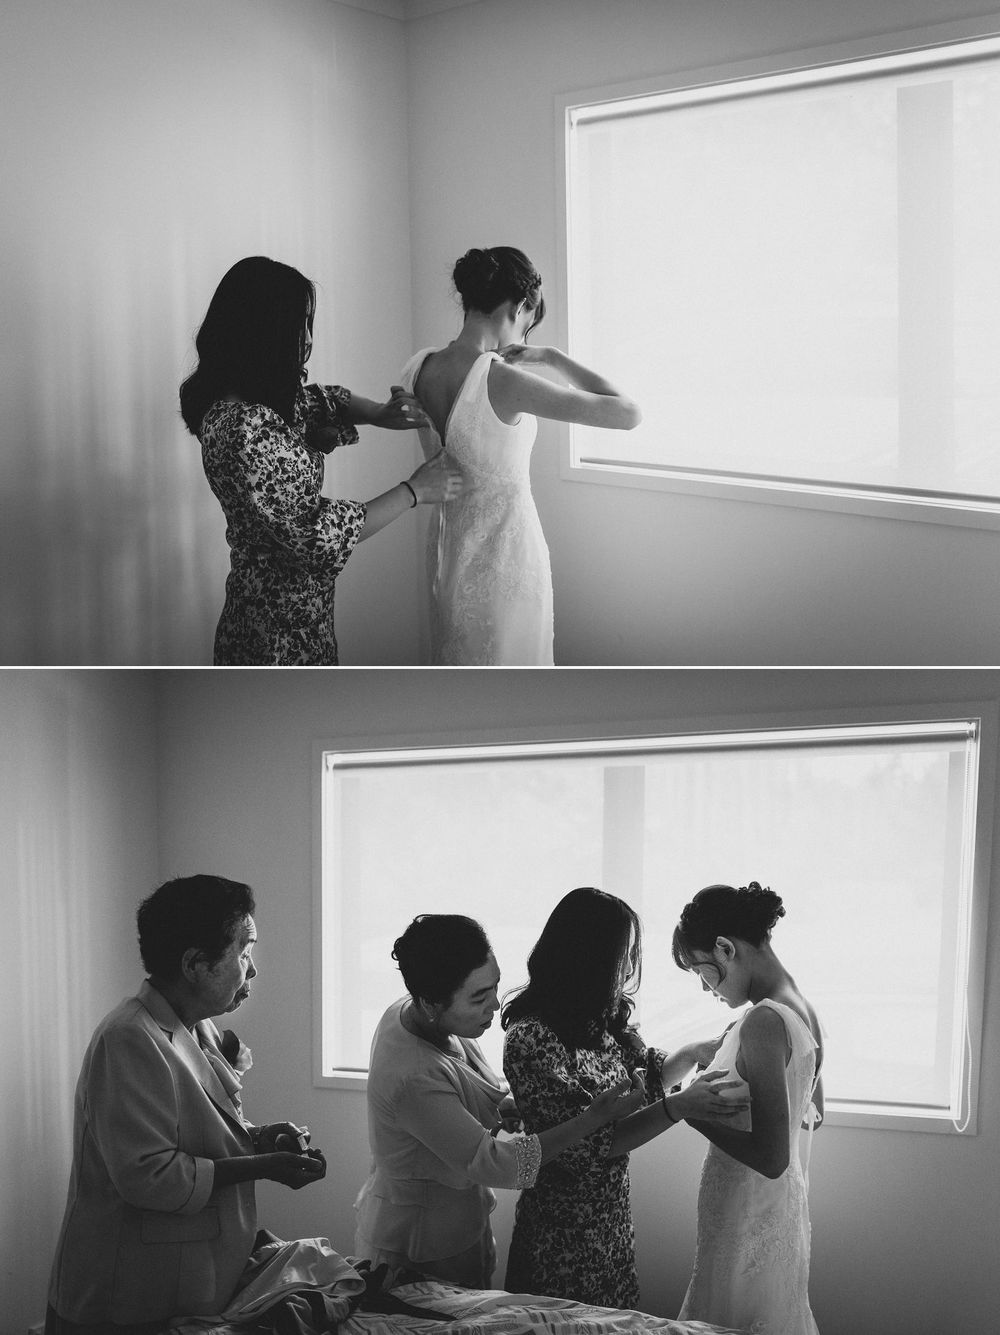 Korean Wedding, 3 Generations